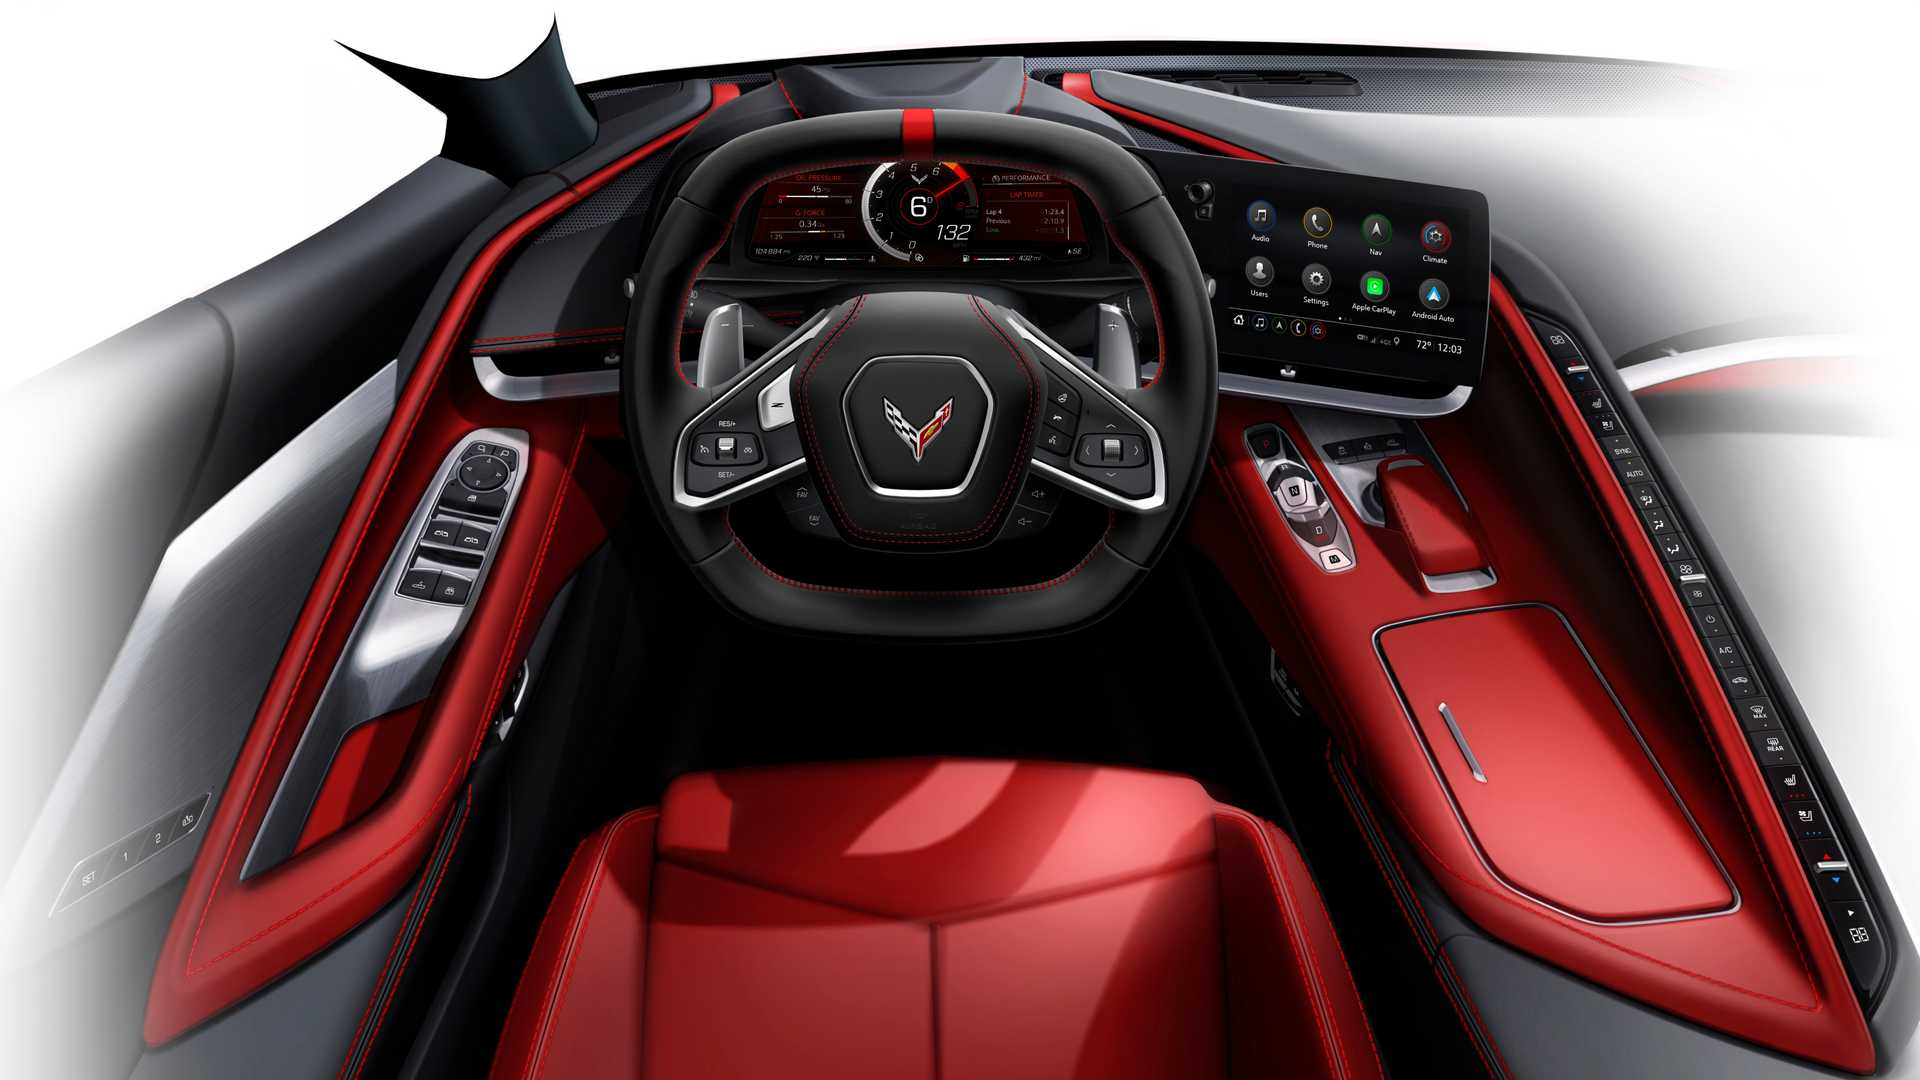 Chevy Corvette C8 Convertible Buttons Have Been Hiding In Plain Sight